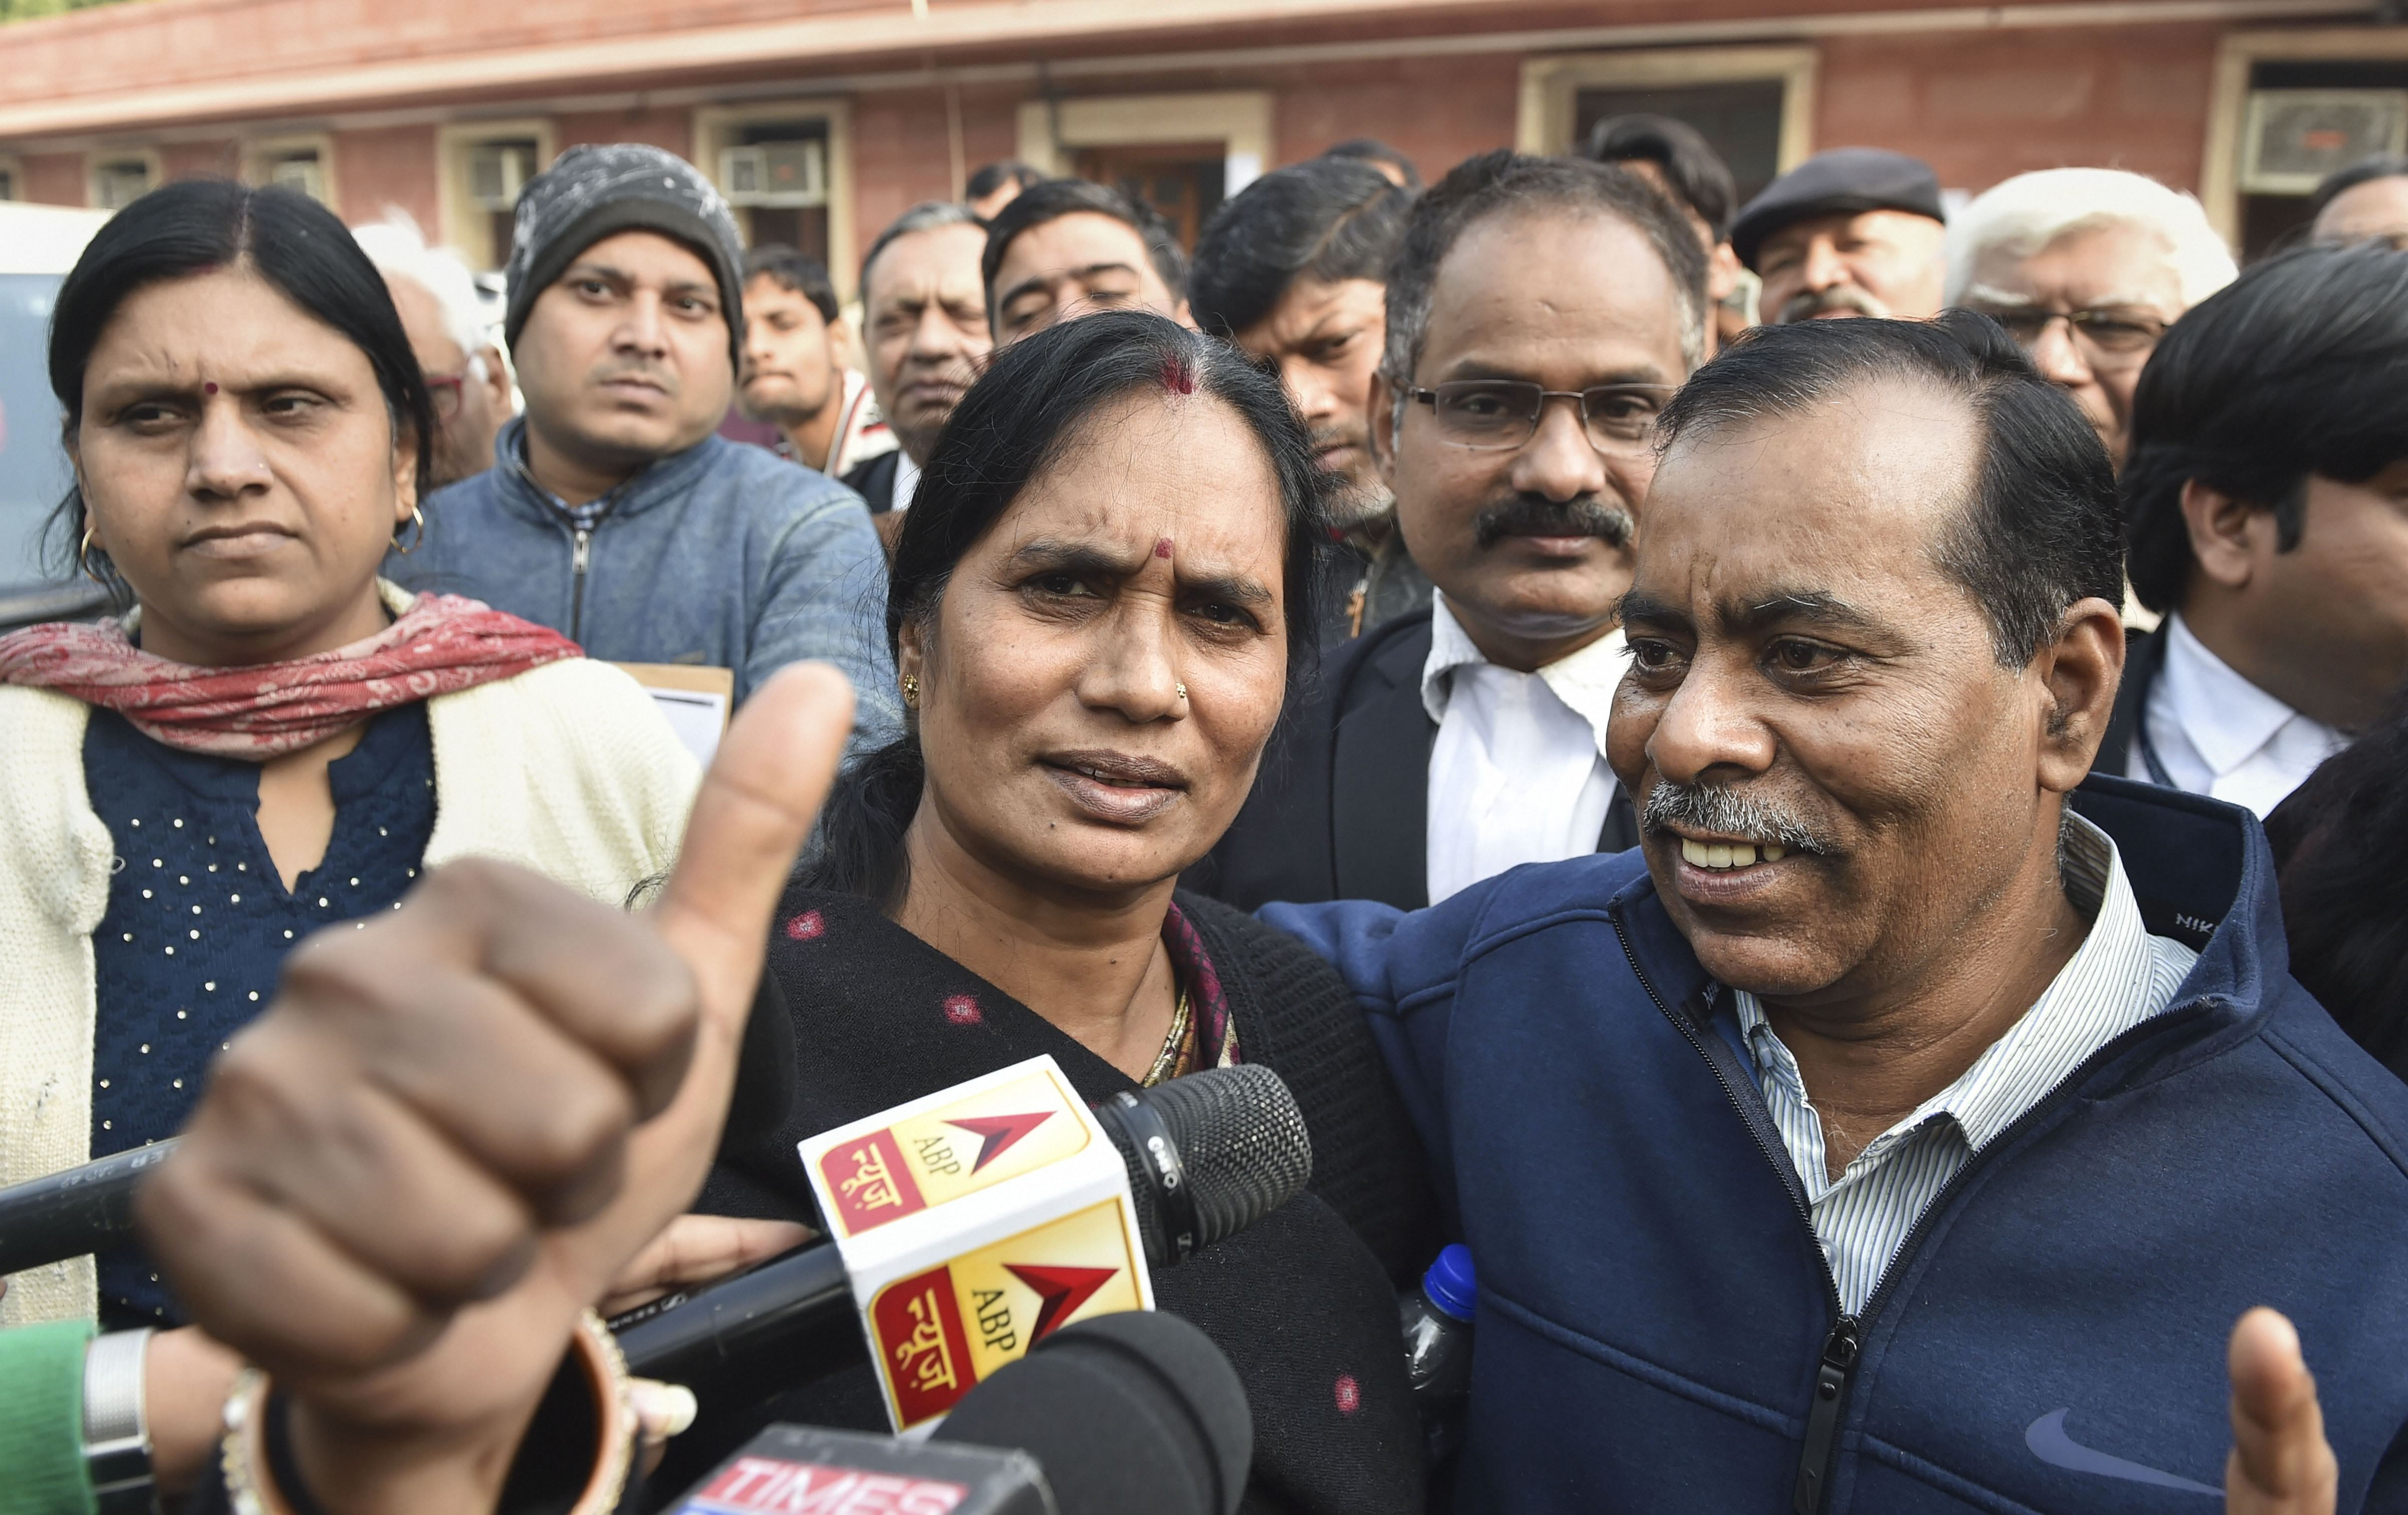 Nirbhaya rape case victim's parents after a hearing at the Supreme Court, in New Delhi, Wednesday, December 18, 2019.